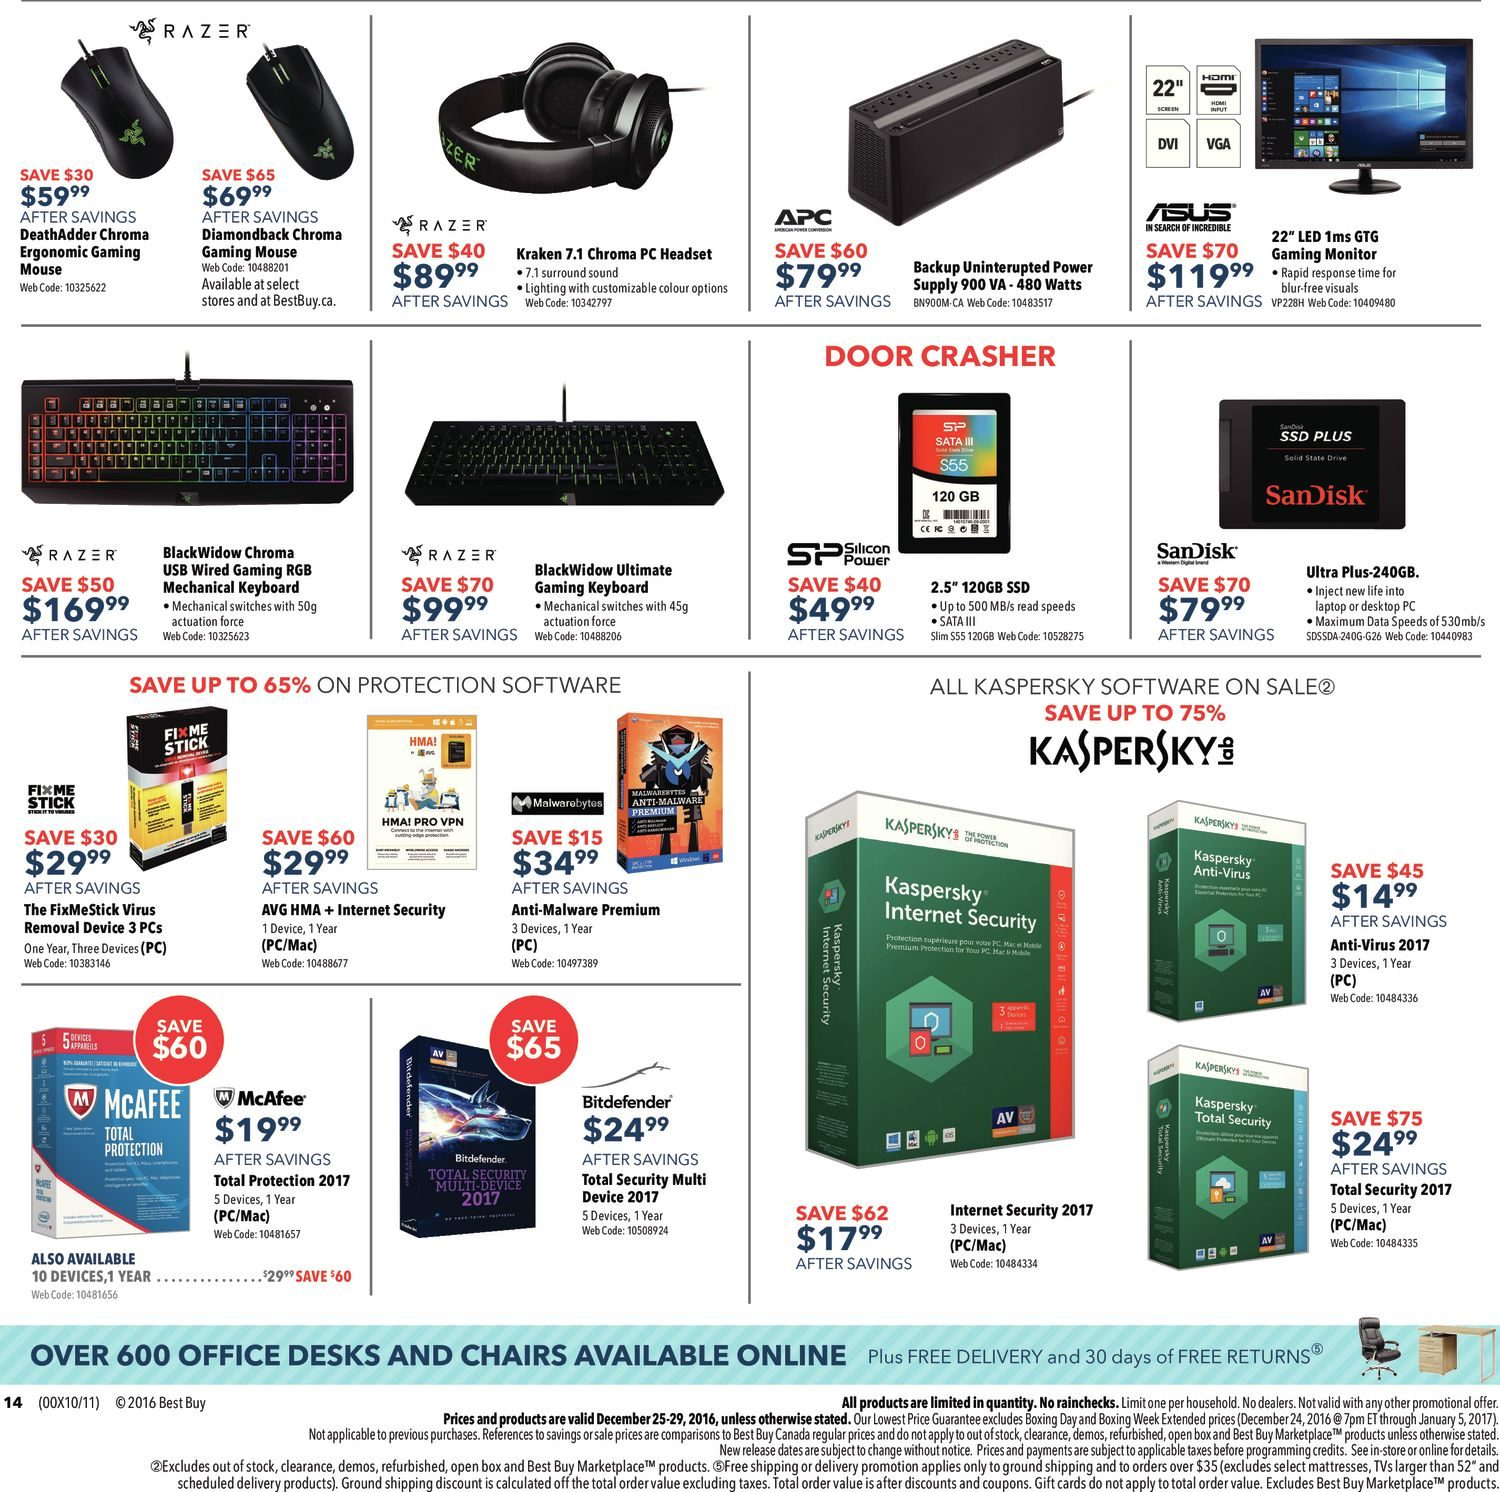 Best buy weekly flyer boxing day sale dec 25 29 best buy weekly flyer boxing day sale dec 25 29 redflagdeals fandeluxe Choice Image